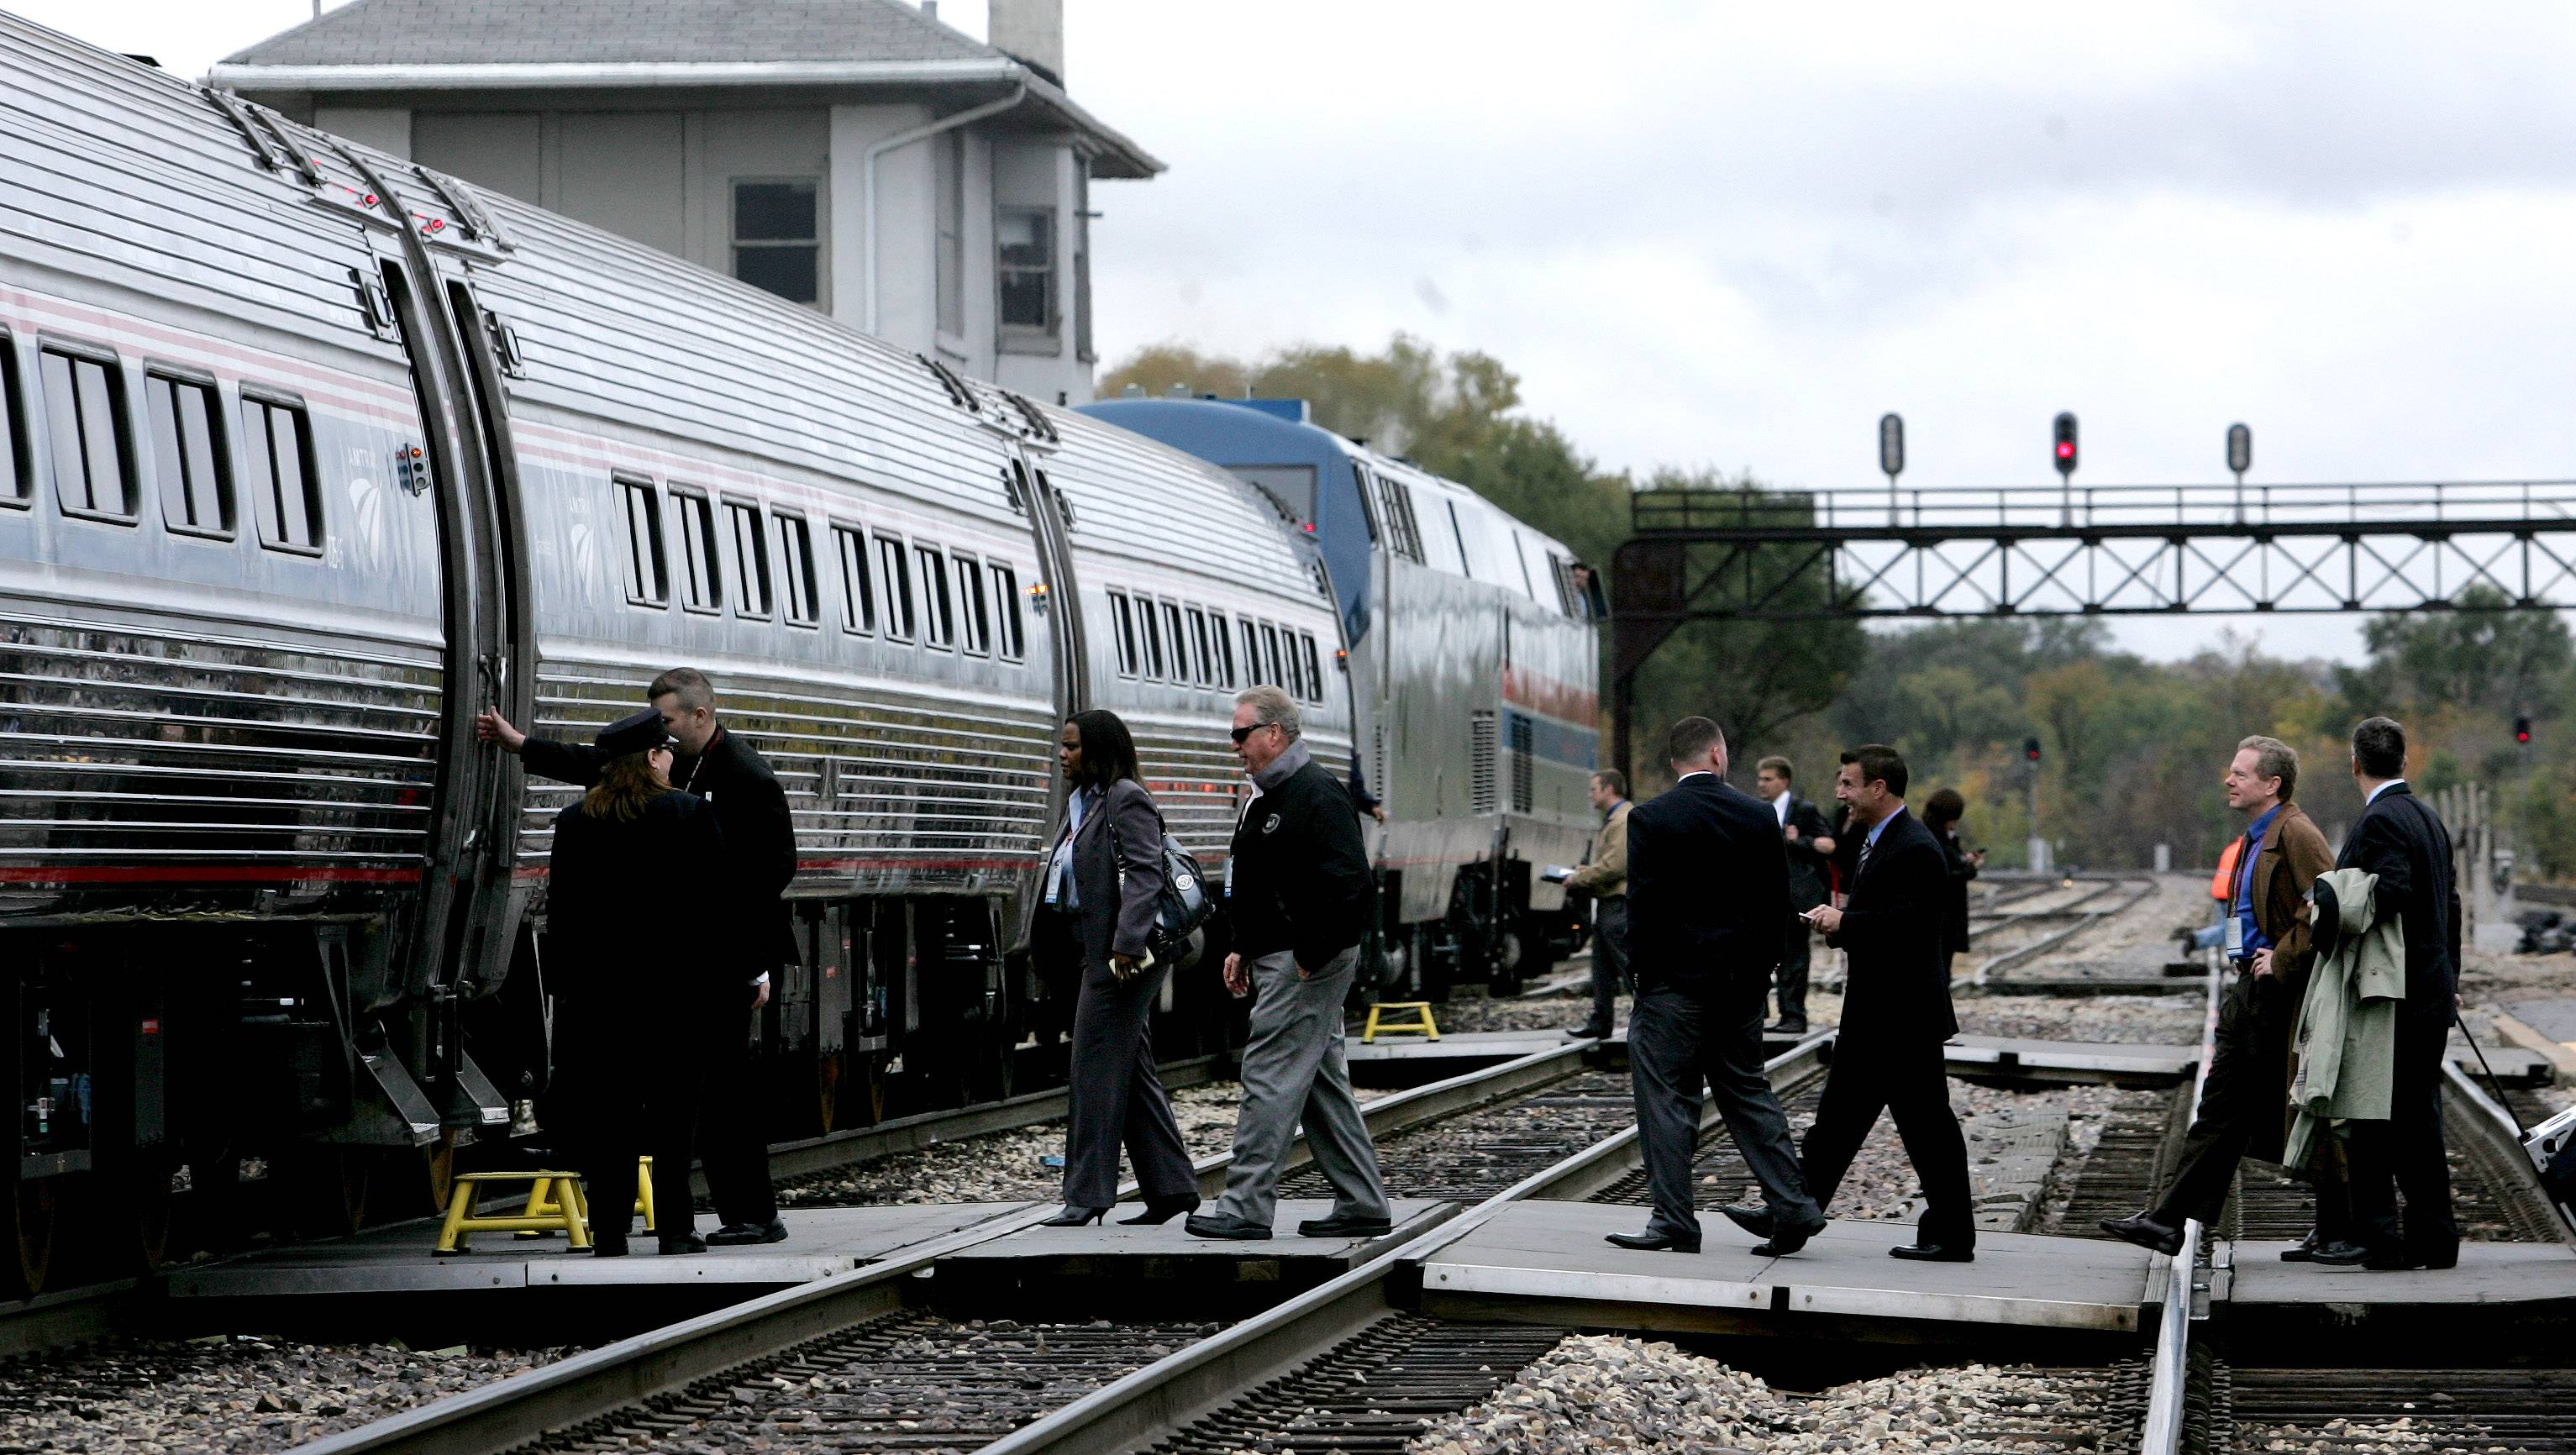 Officials and members of the media board an Amtrak high-speed train for a ride from Joliet to Normal on Friday. A planned high-speed rail route between Chicago and St. Louis will be the first in the midwest.